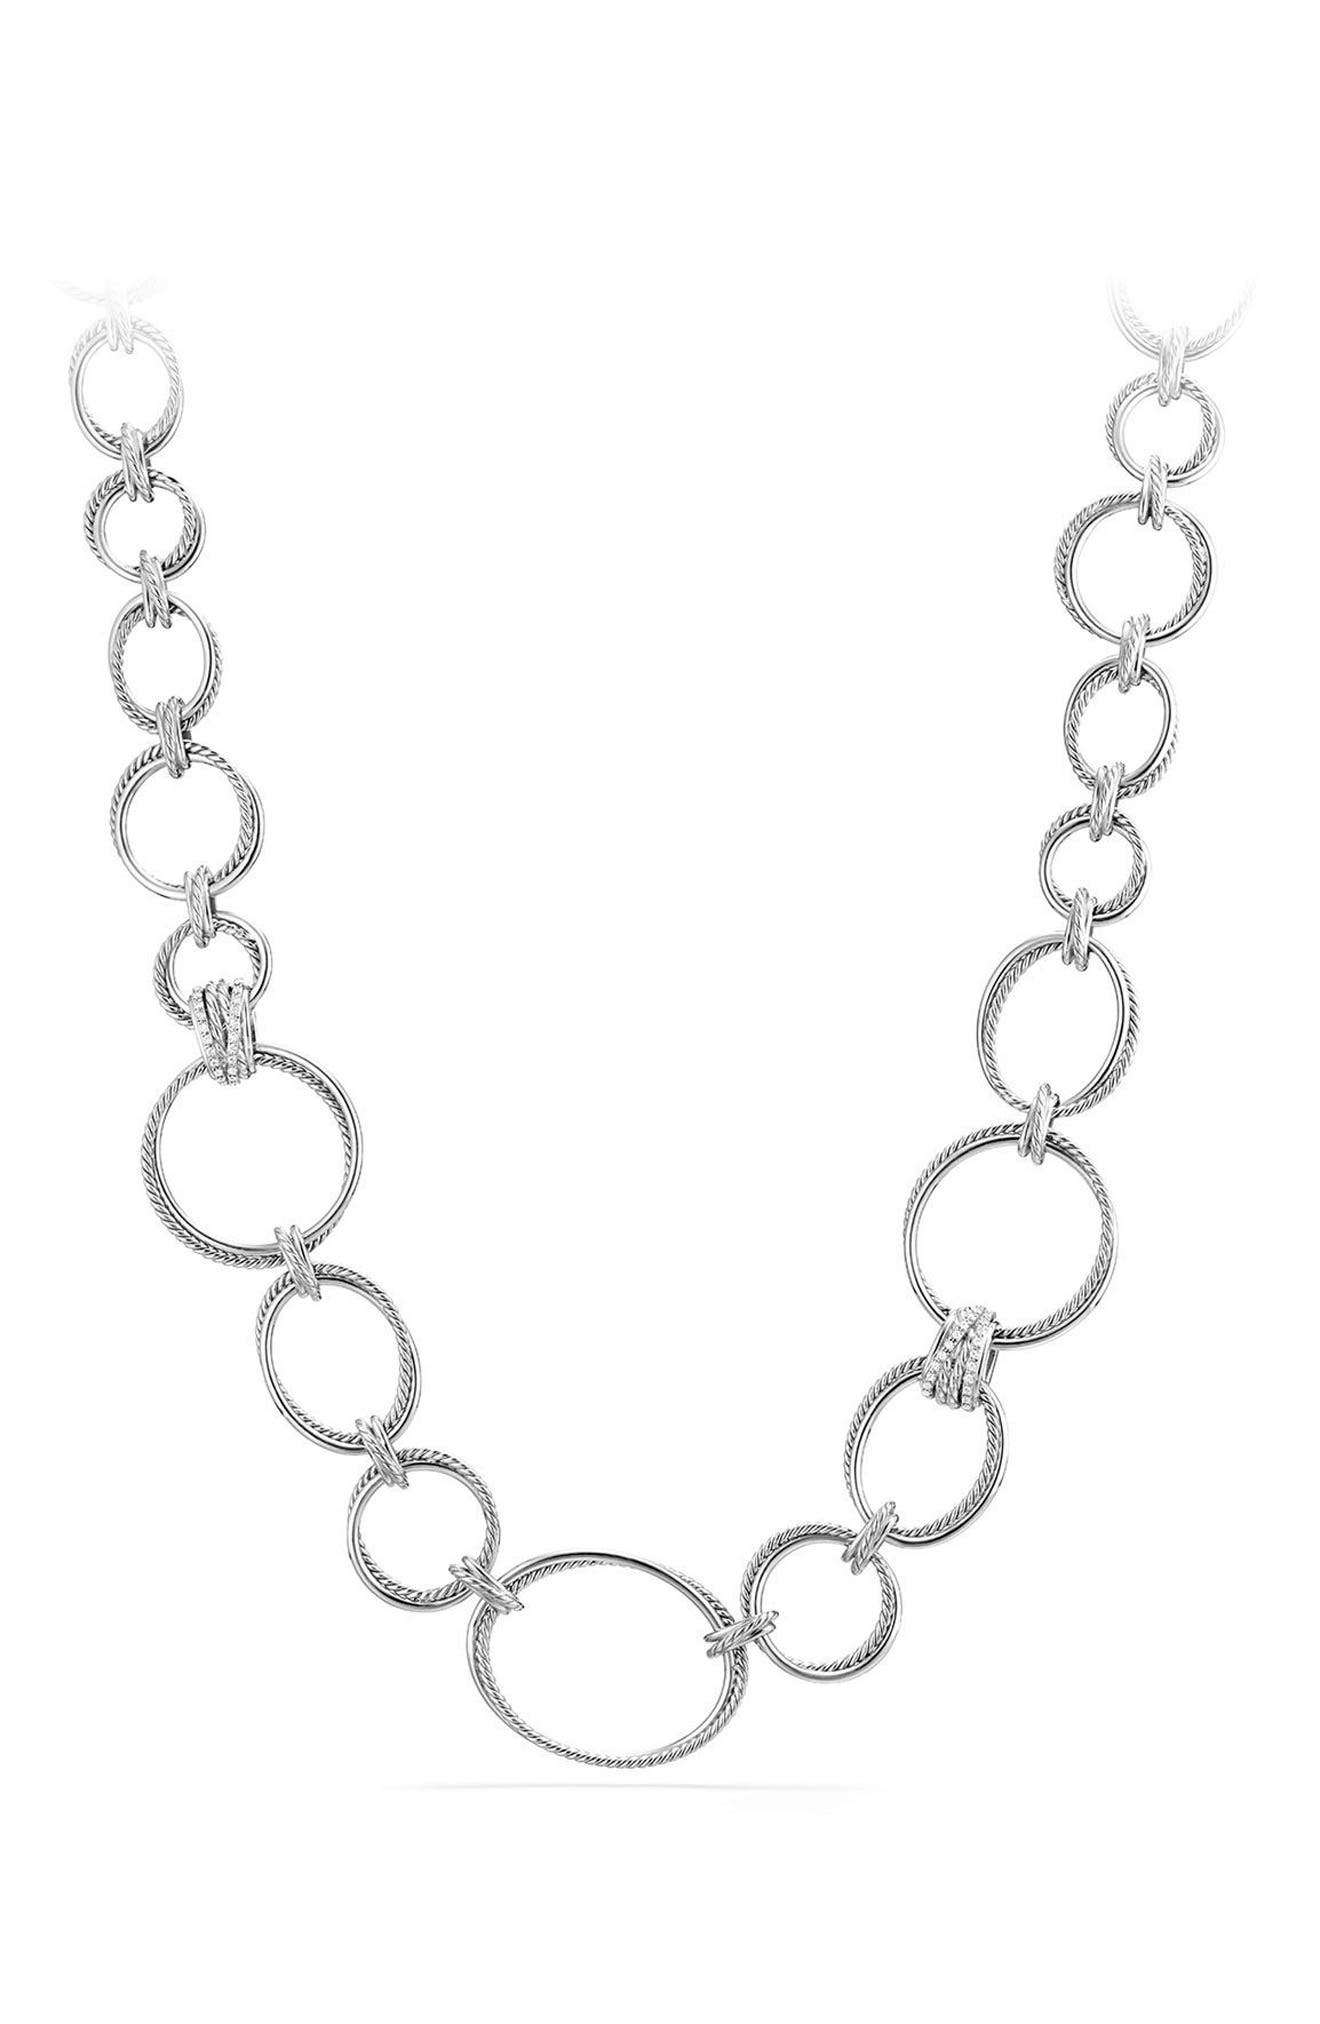 Crossover Convertible Statement Necklace with Diamonds,                             Main thumbnail 1, color,                             Silver